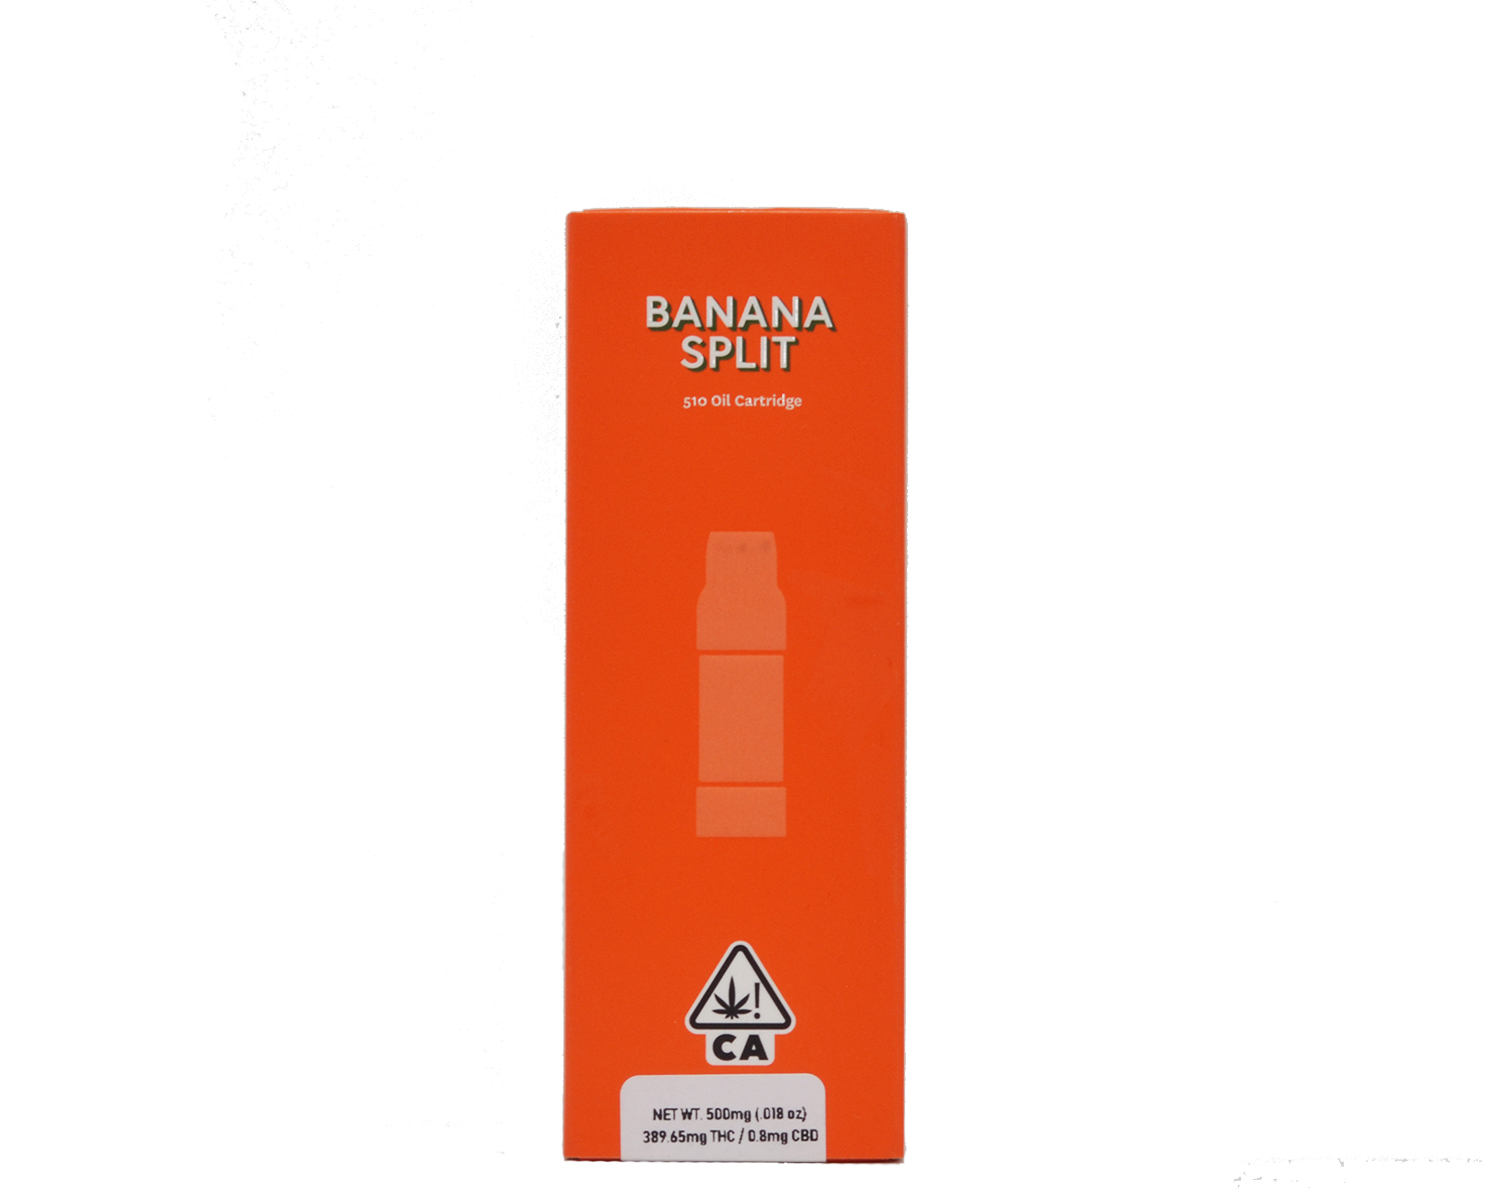 Sherbinskis Banana Split Sauce Cartridge 1g  77.93% THC 0.16% CBD   $70   Banana Split is a sativa-dominant cross of their famous Tangie and Banana Sherbert. This combination makes for a Tangie-derived citrus aroma combined with the sweet flavors of Banana Sherbert. Banana Split offers a clean level-headed high suitable for anyone looking to have a productive day.